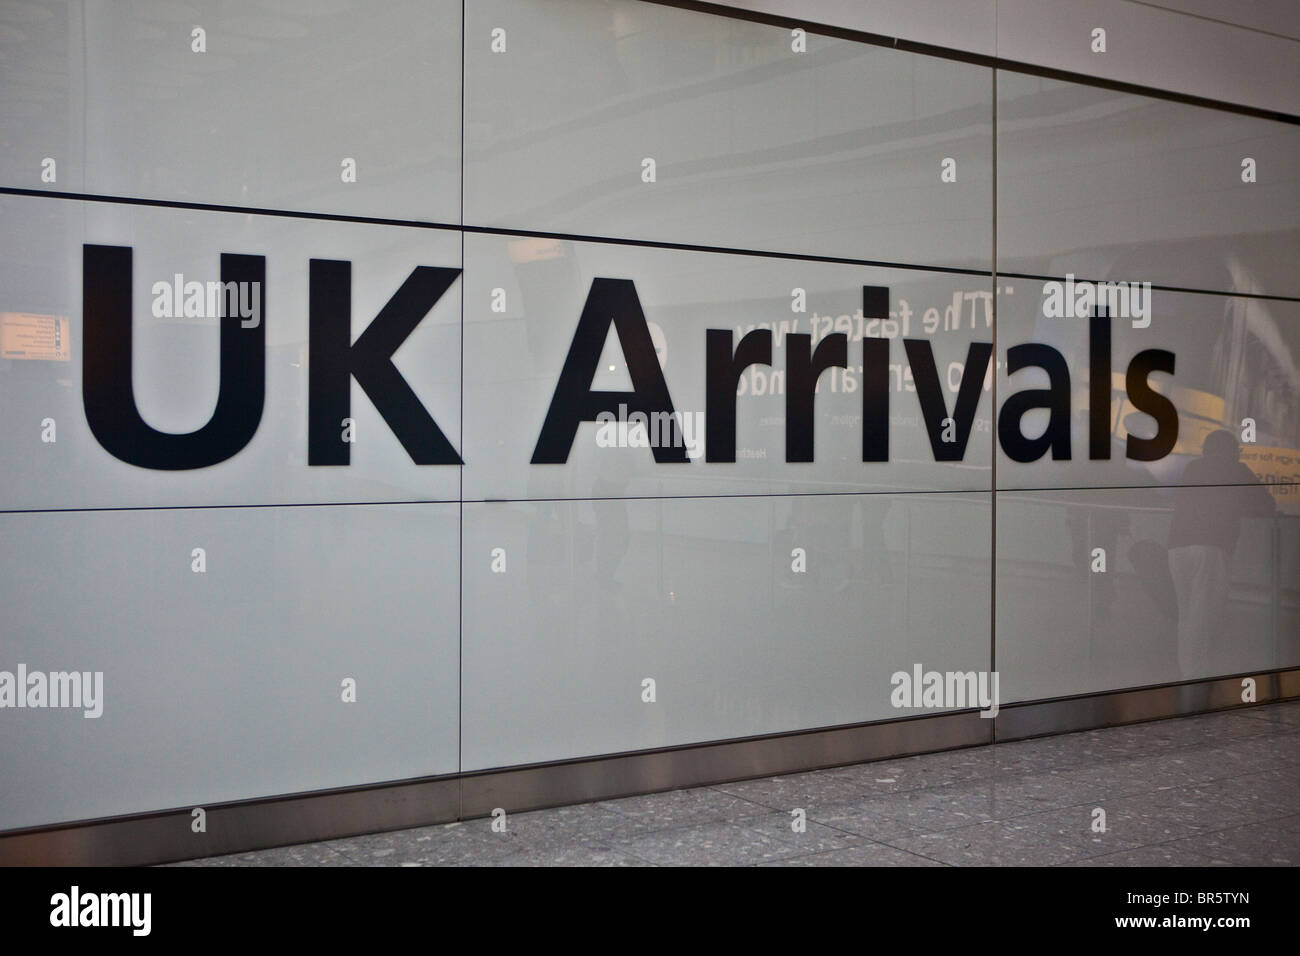 UK-Ankünfte am London Heathrow Airport Terminal 5 Sign. Stockbild